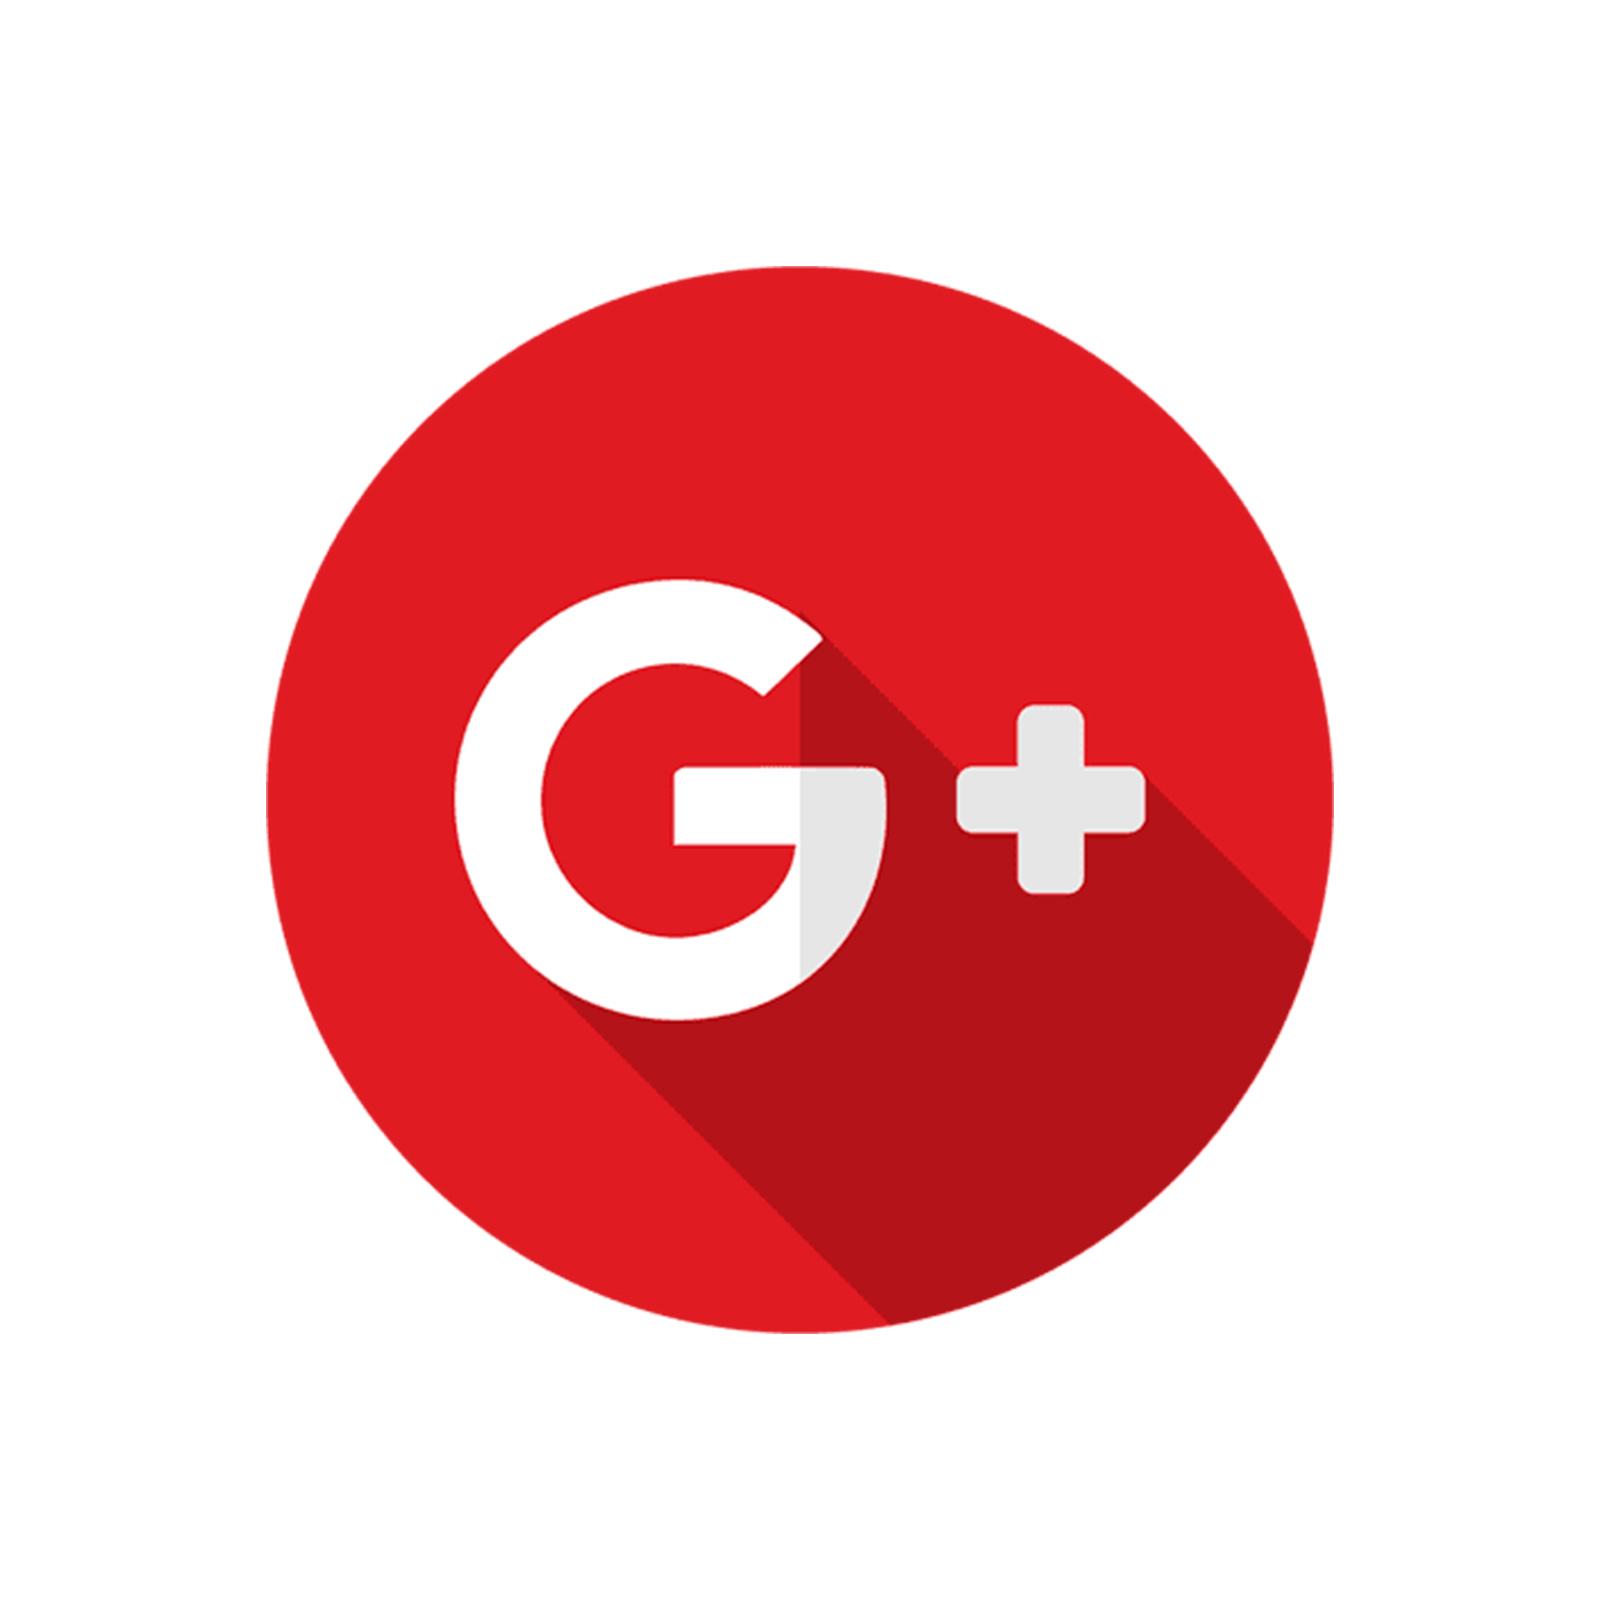 Google Plus is an Internet-based social network that is owned and operated by Google. The service, Google's fourth foray into social networking, experienced strong growth in its initial years